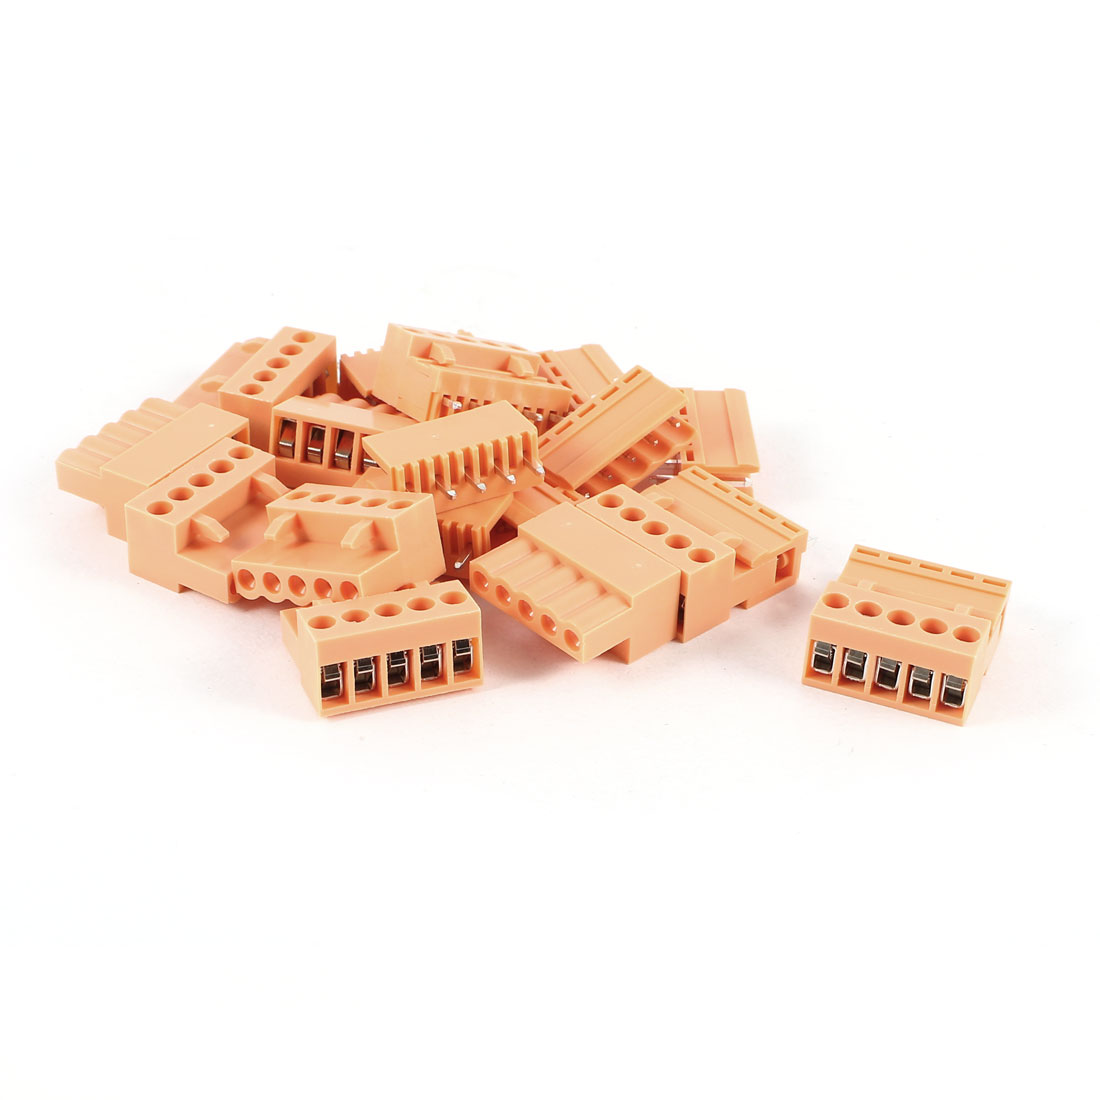 10 Pcs 5Pin 3.96mm Spacing PCB Screw Terminal Block Connector 300V 10A AWG14-26 Orange